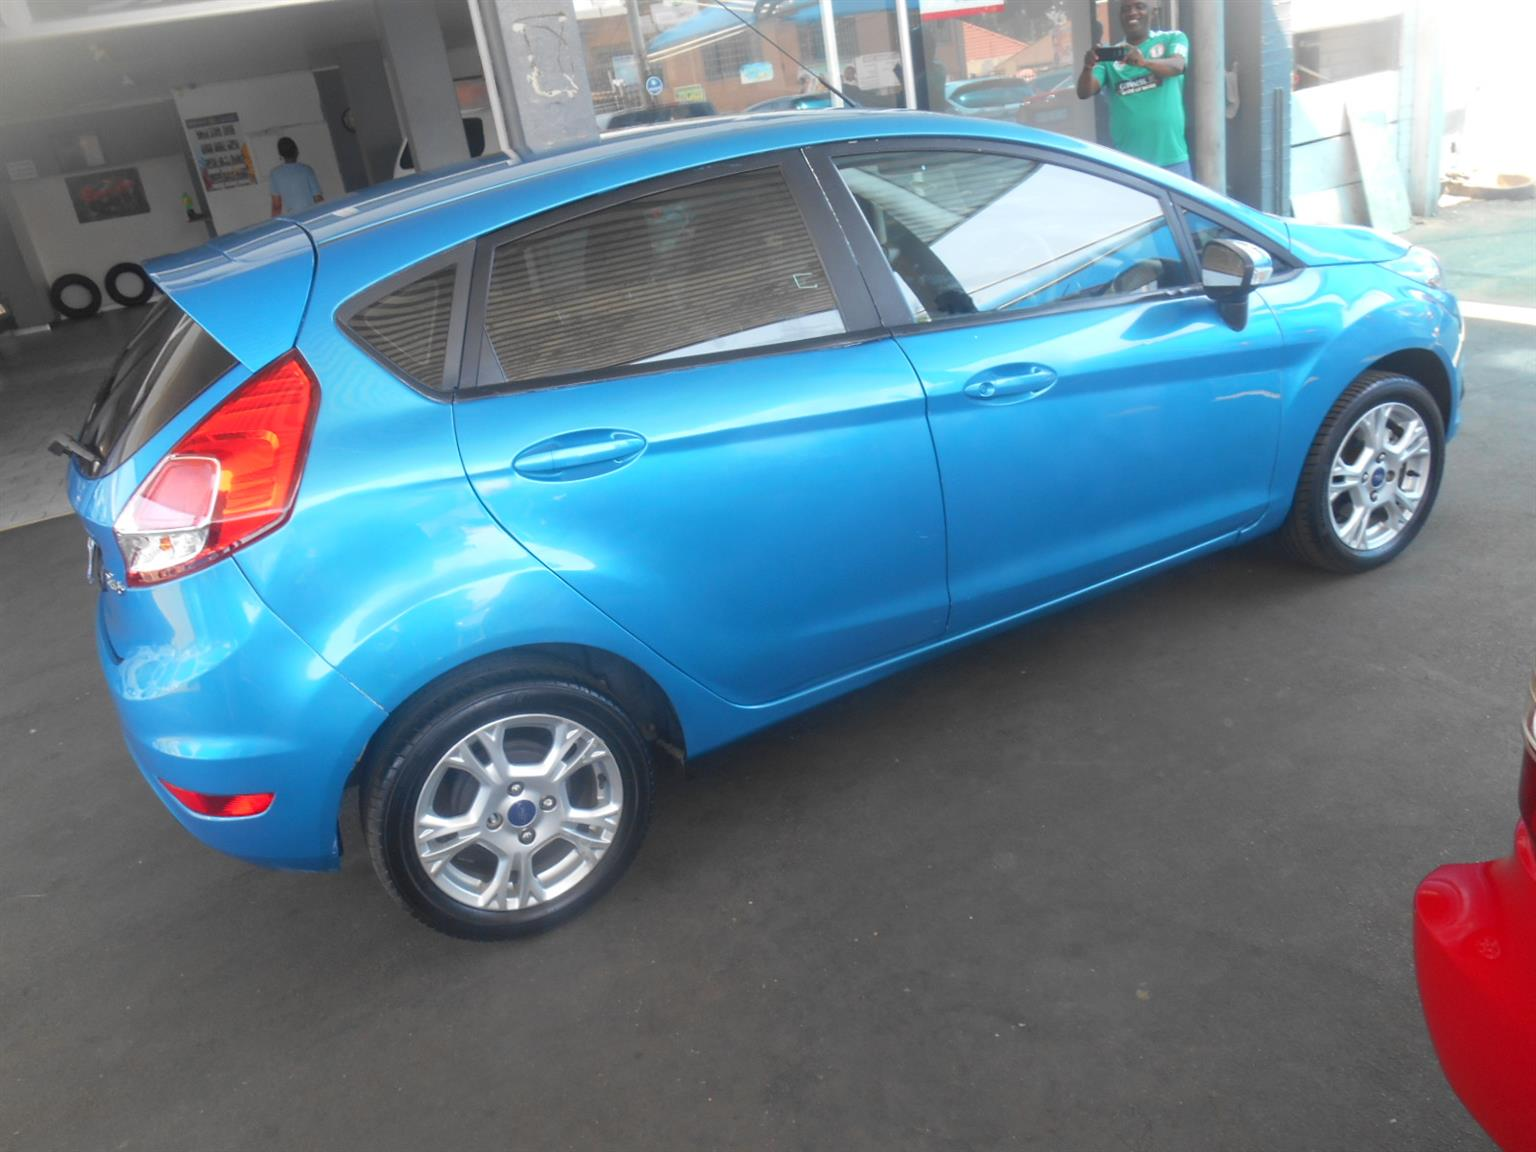 FORD FIESTA ,ENGINE 1.0,,32698KM,2015 MODEL,,R160,000,THE FACTORY SAFETY TECH INCLUDES ANTI LOCK BRAKING SYSTEM , AIRBAGS , REMOTE CENTRAL LOCKING WITH AUTO LOCK FUNCTION FOR YOUR ADDED PEACE OF MIND,